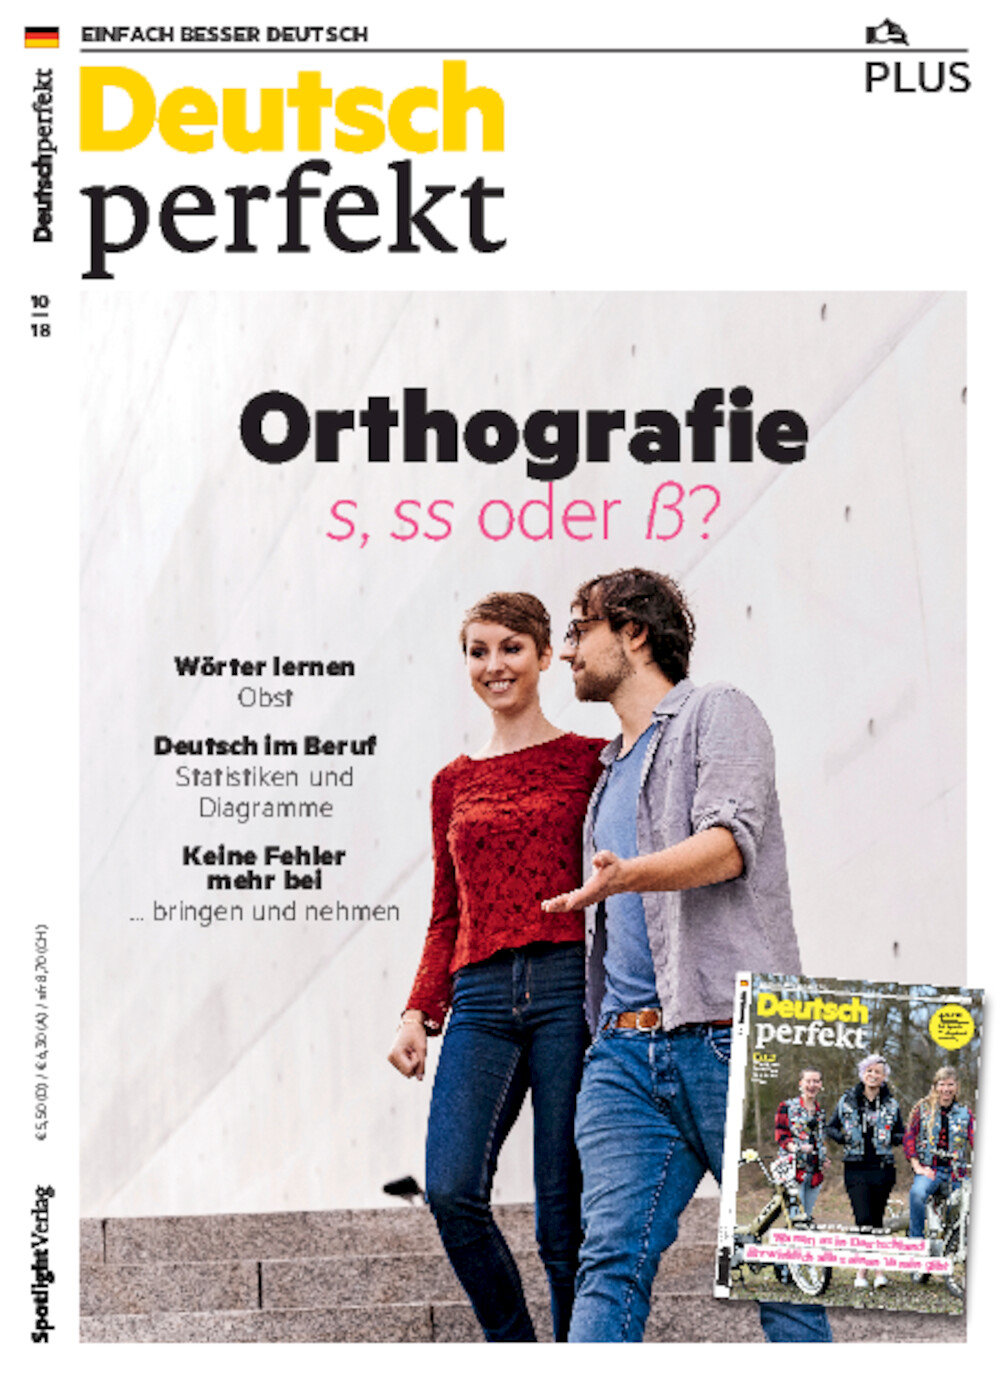 Deutsch perfekt PLUS 10/2018